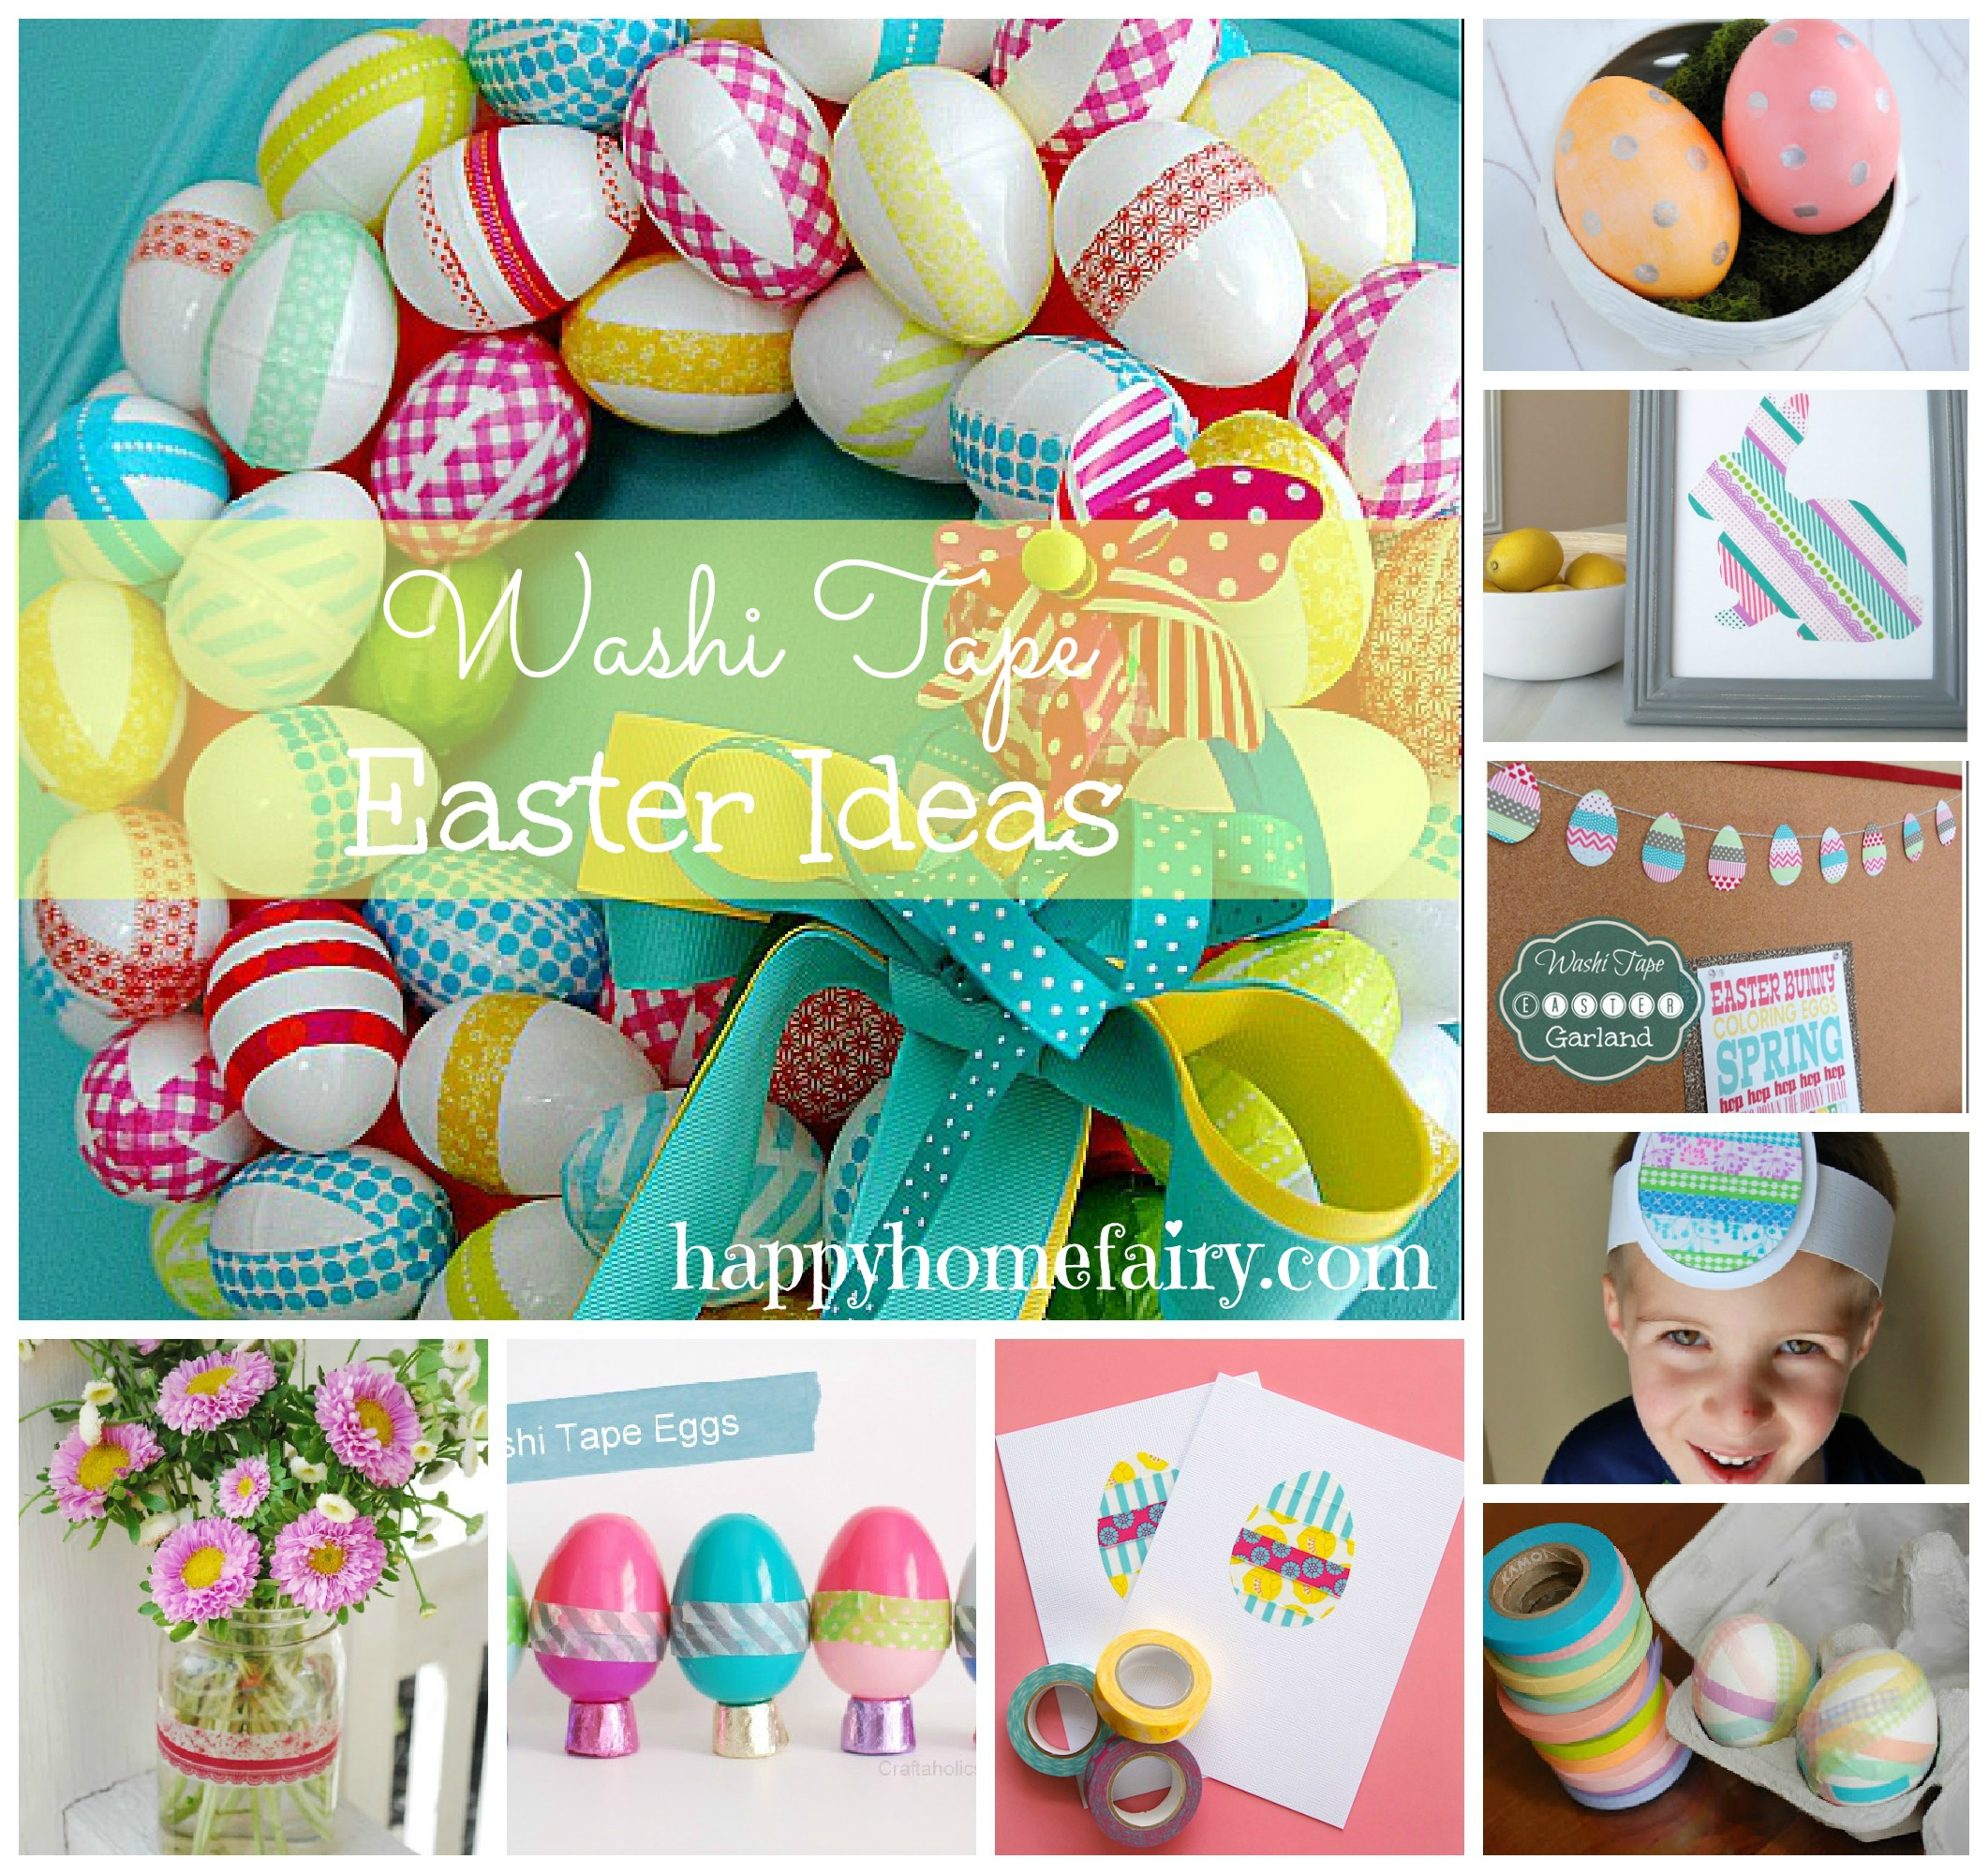 Washi Tape Easter Awesome Happy Home Fairy